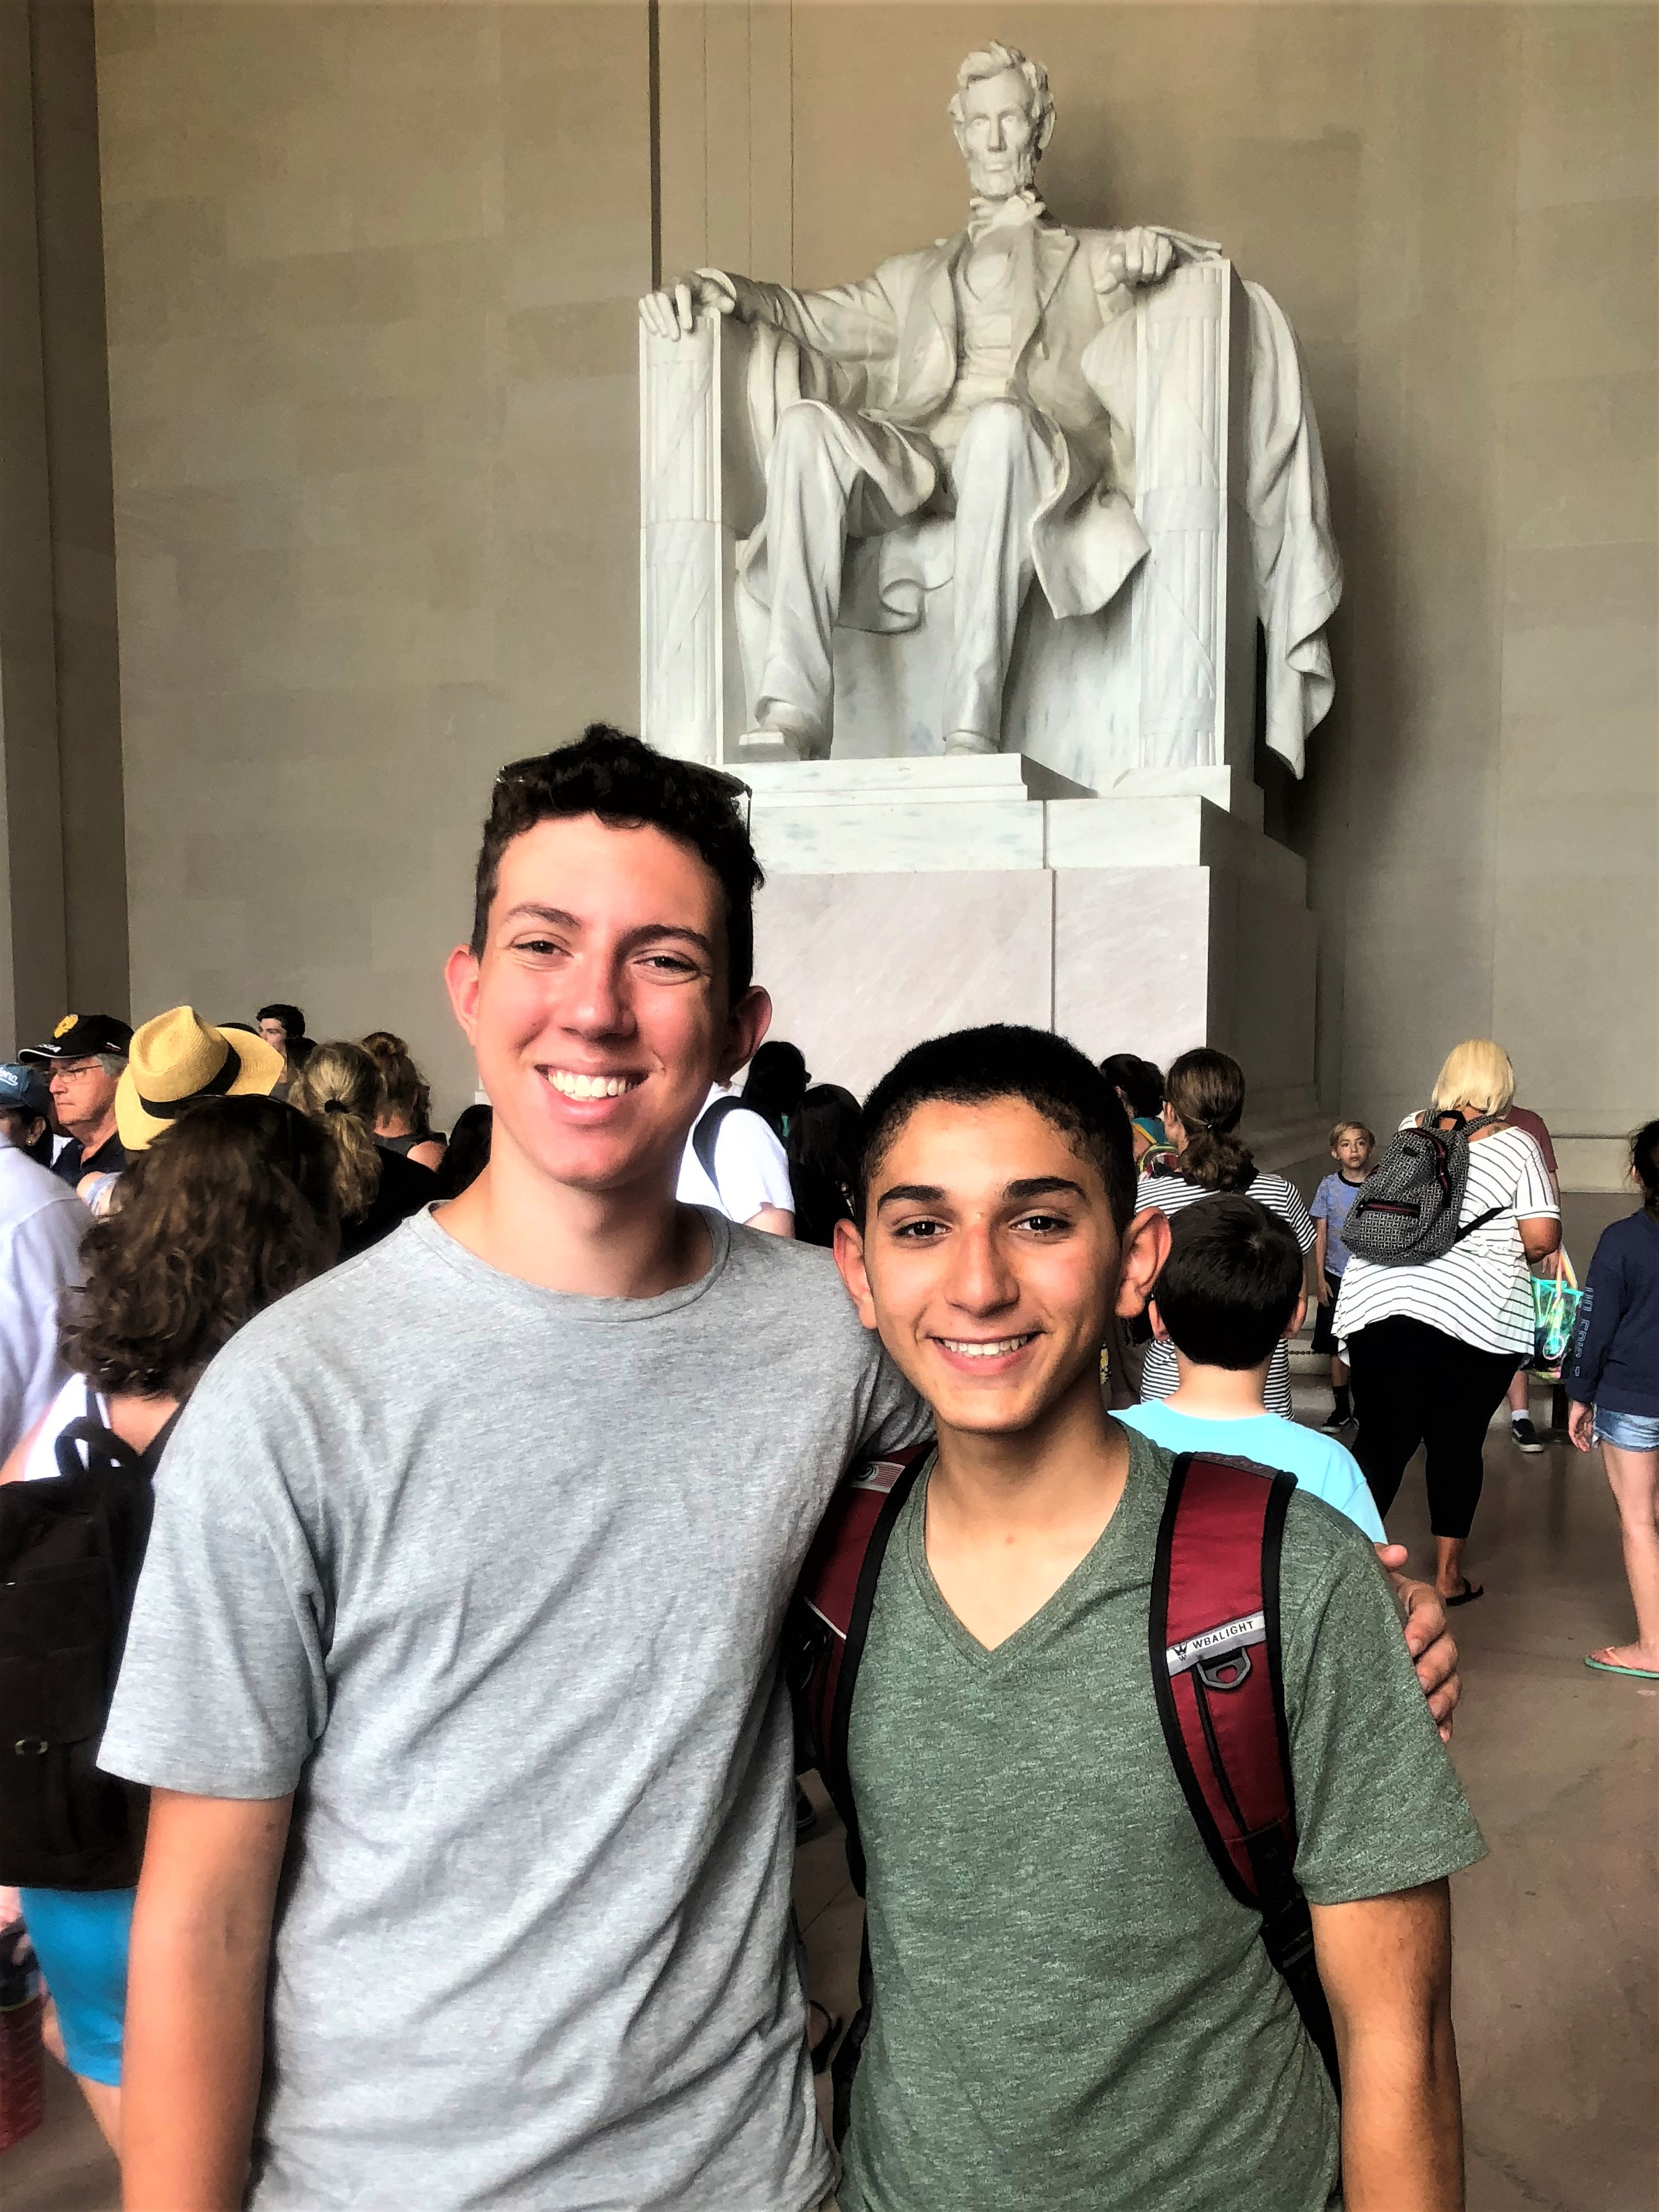 Touring the Lincoln Memorial